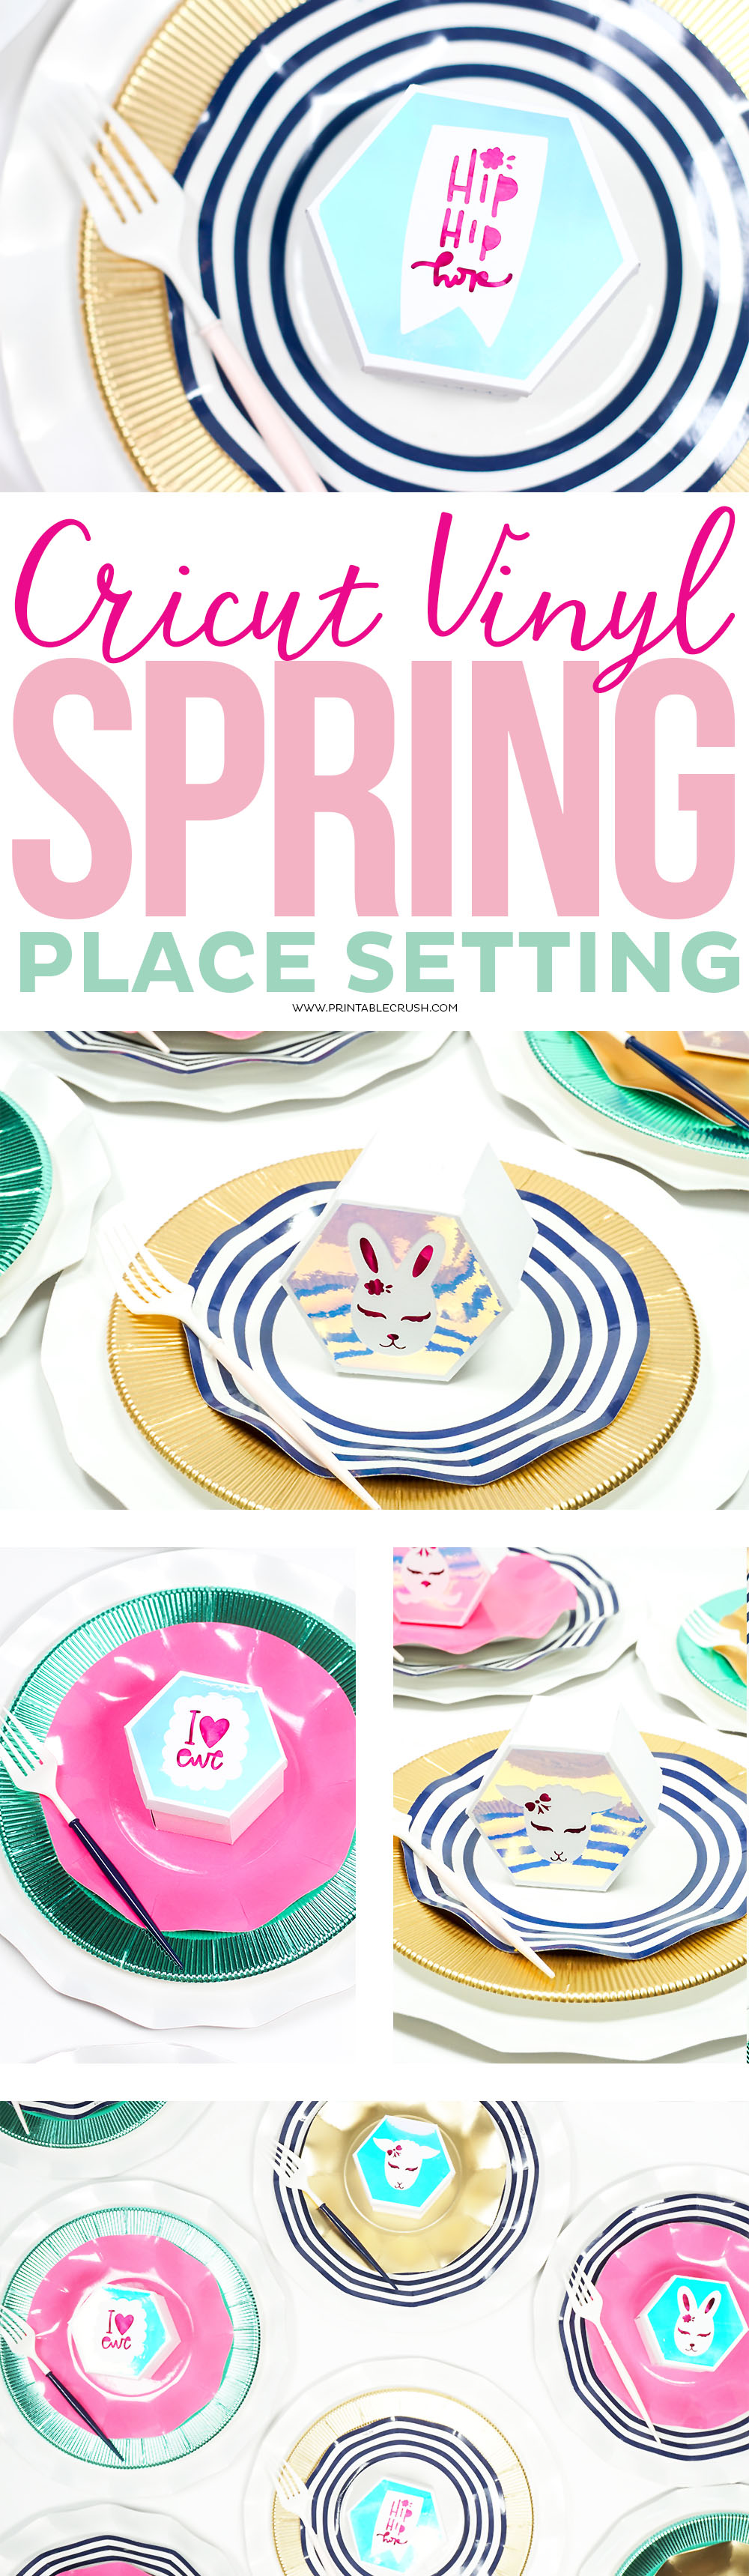 Cricut Vinyl Spring Place Setting long collage